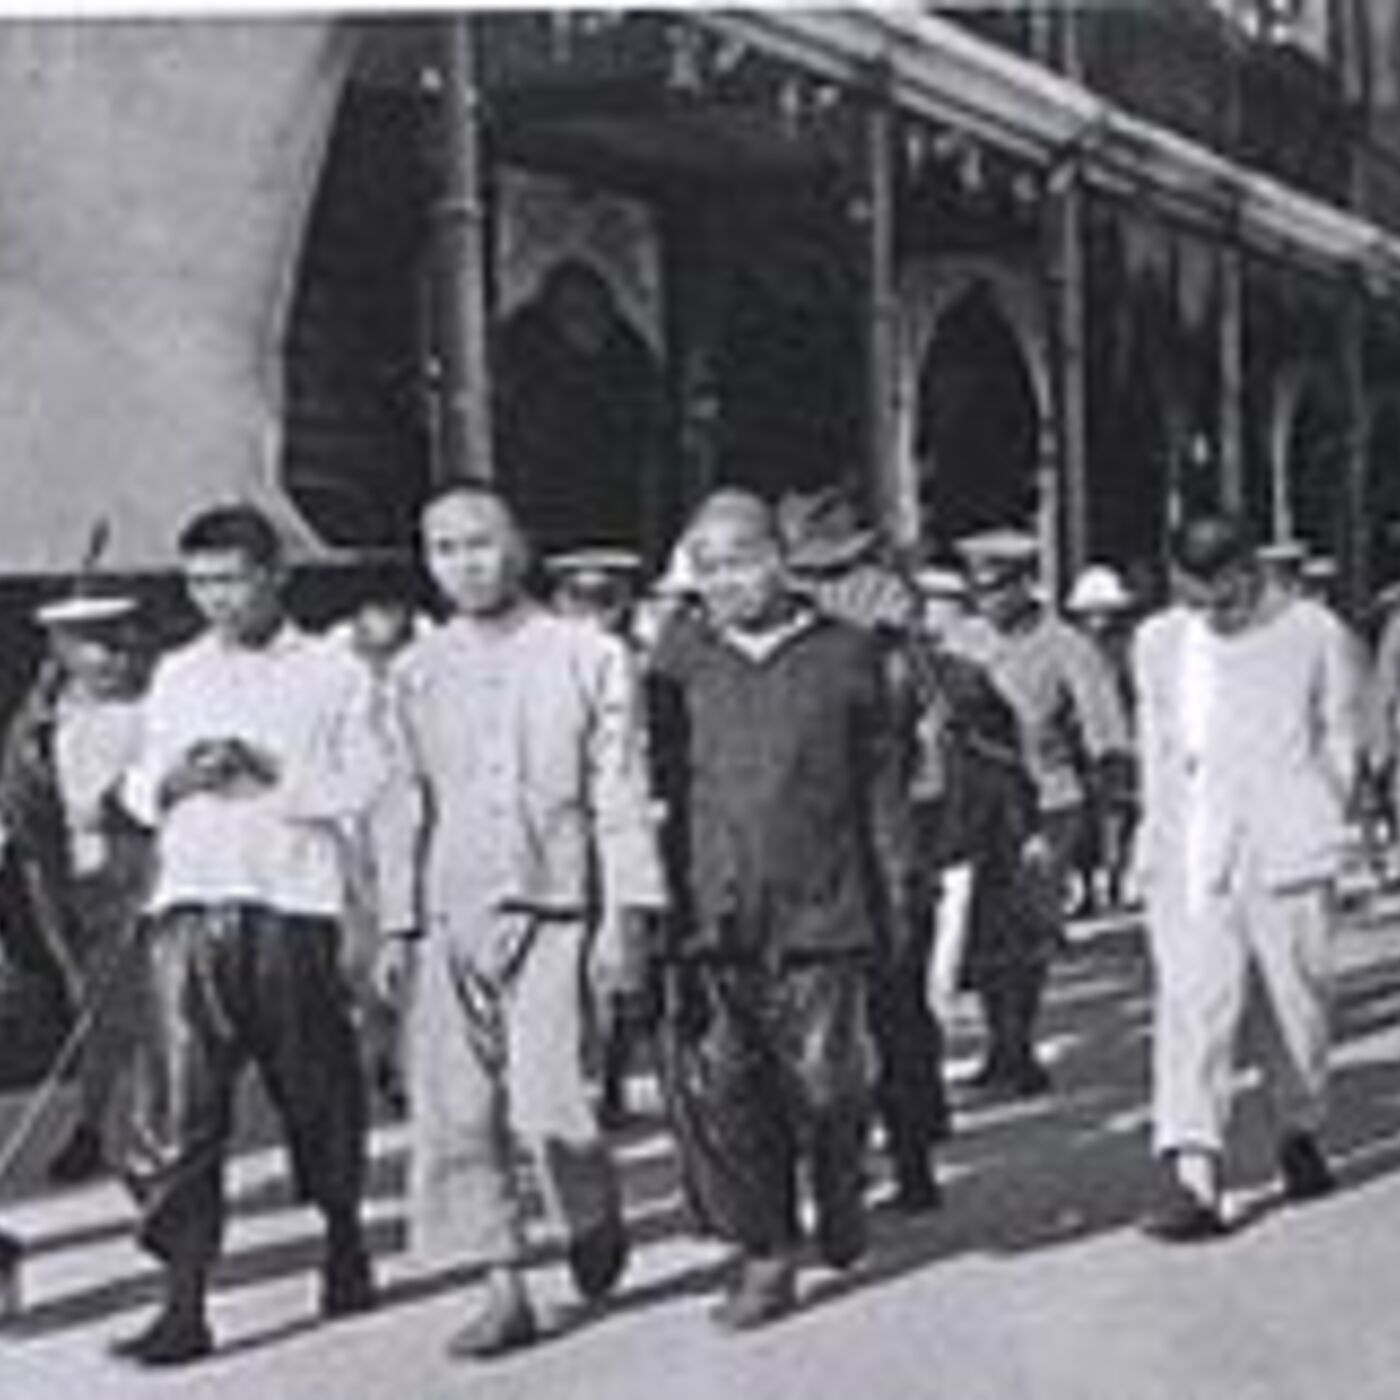 Rivers of Blood in the Streets of Shanghai: The Massacre of the Communists by the Guomindang Right